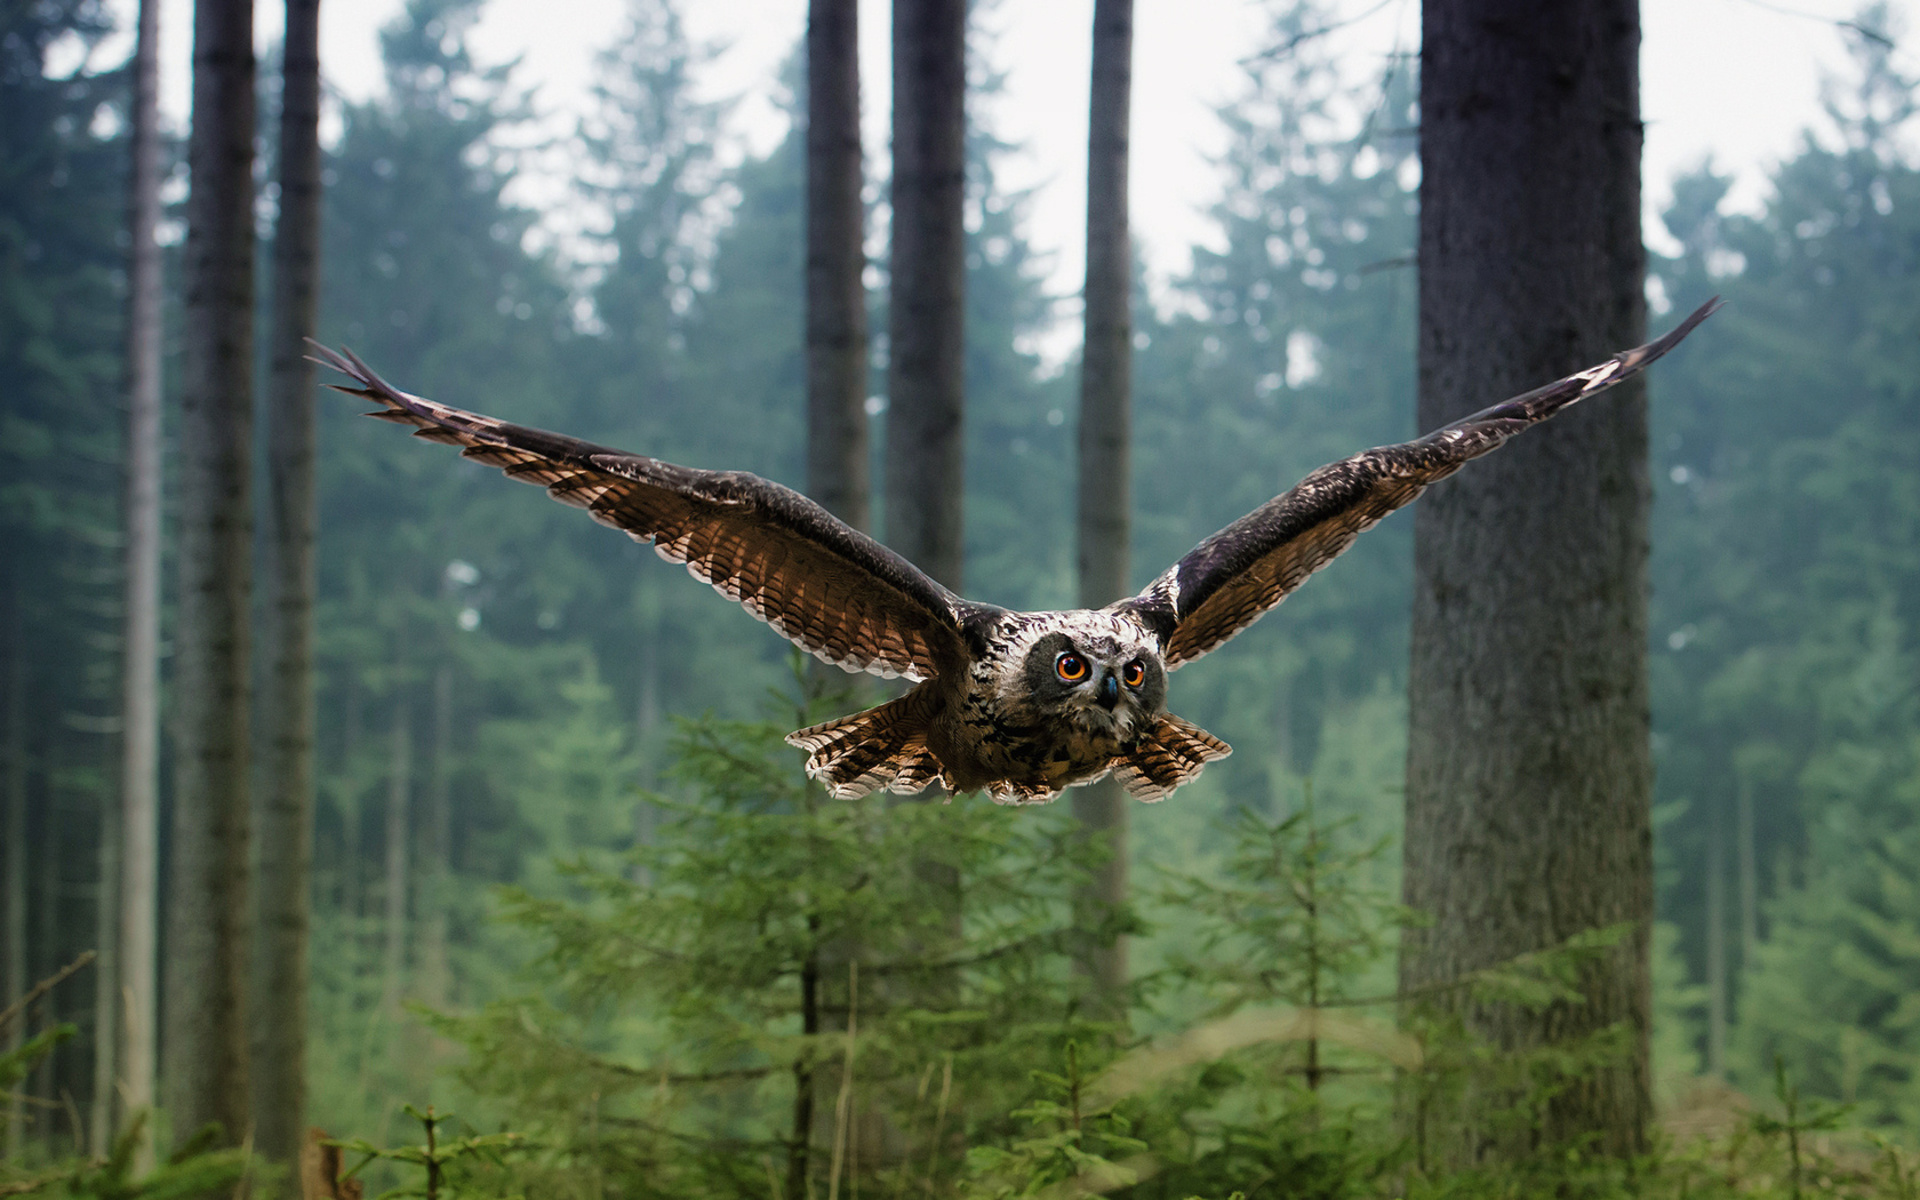 Owls animals birds wildlife predator wings feathers flight fly air nature landscapes trees forest